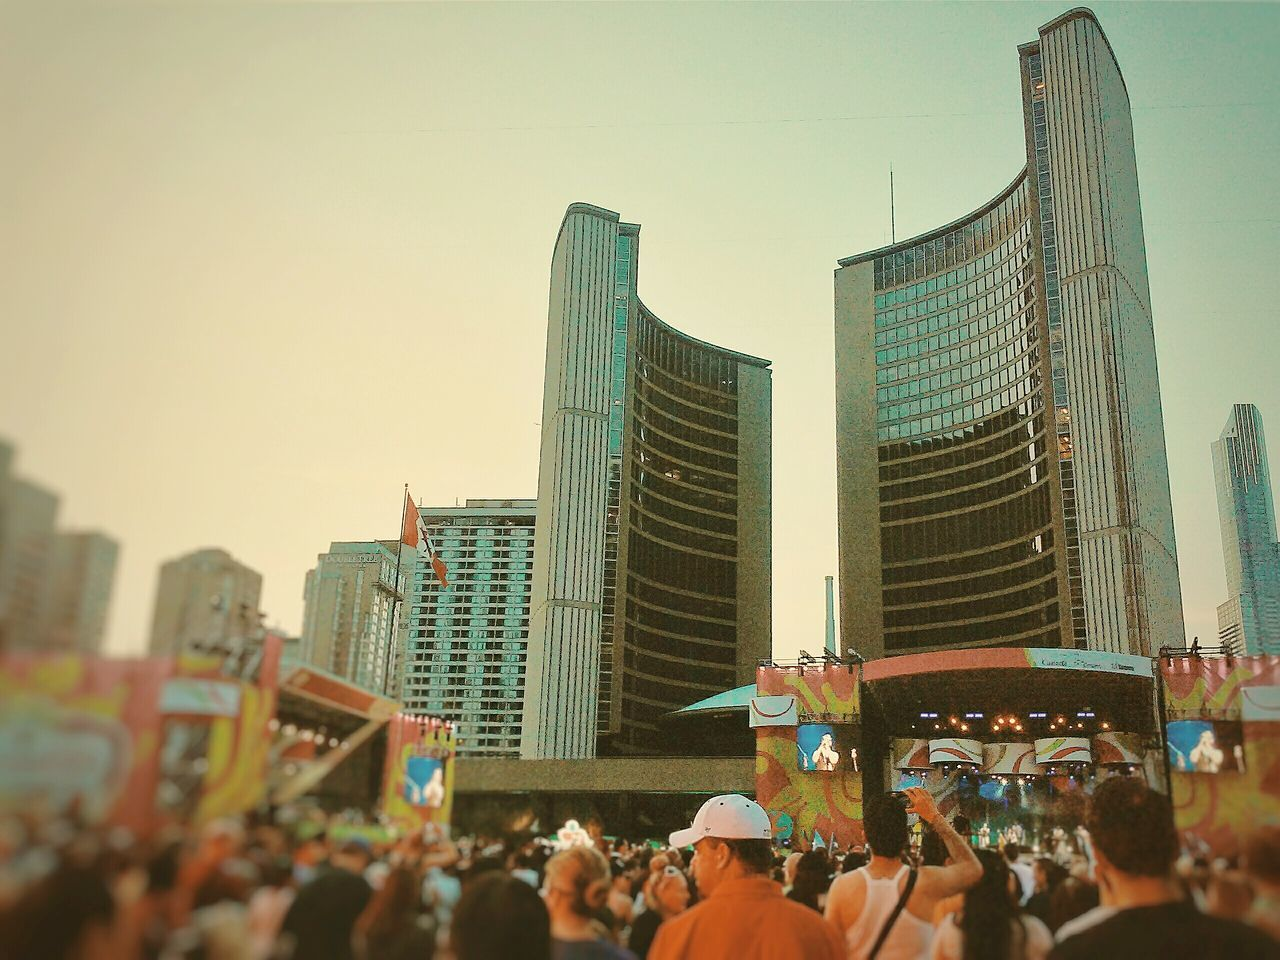 Blur Backgrounddefocus Nathanphillipssquare Toronto Canada Ontario, Canada Celebration PanAmGames City Hall Things I Like Crowd Concert Square Up Close Street Photography The Street Photographer - 2016 EyeEm Awards The Following The Essence Of Summer Colour Of Life Finding New Frontiers The City Light